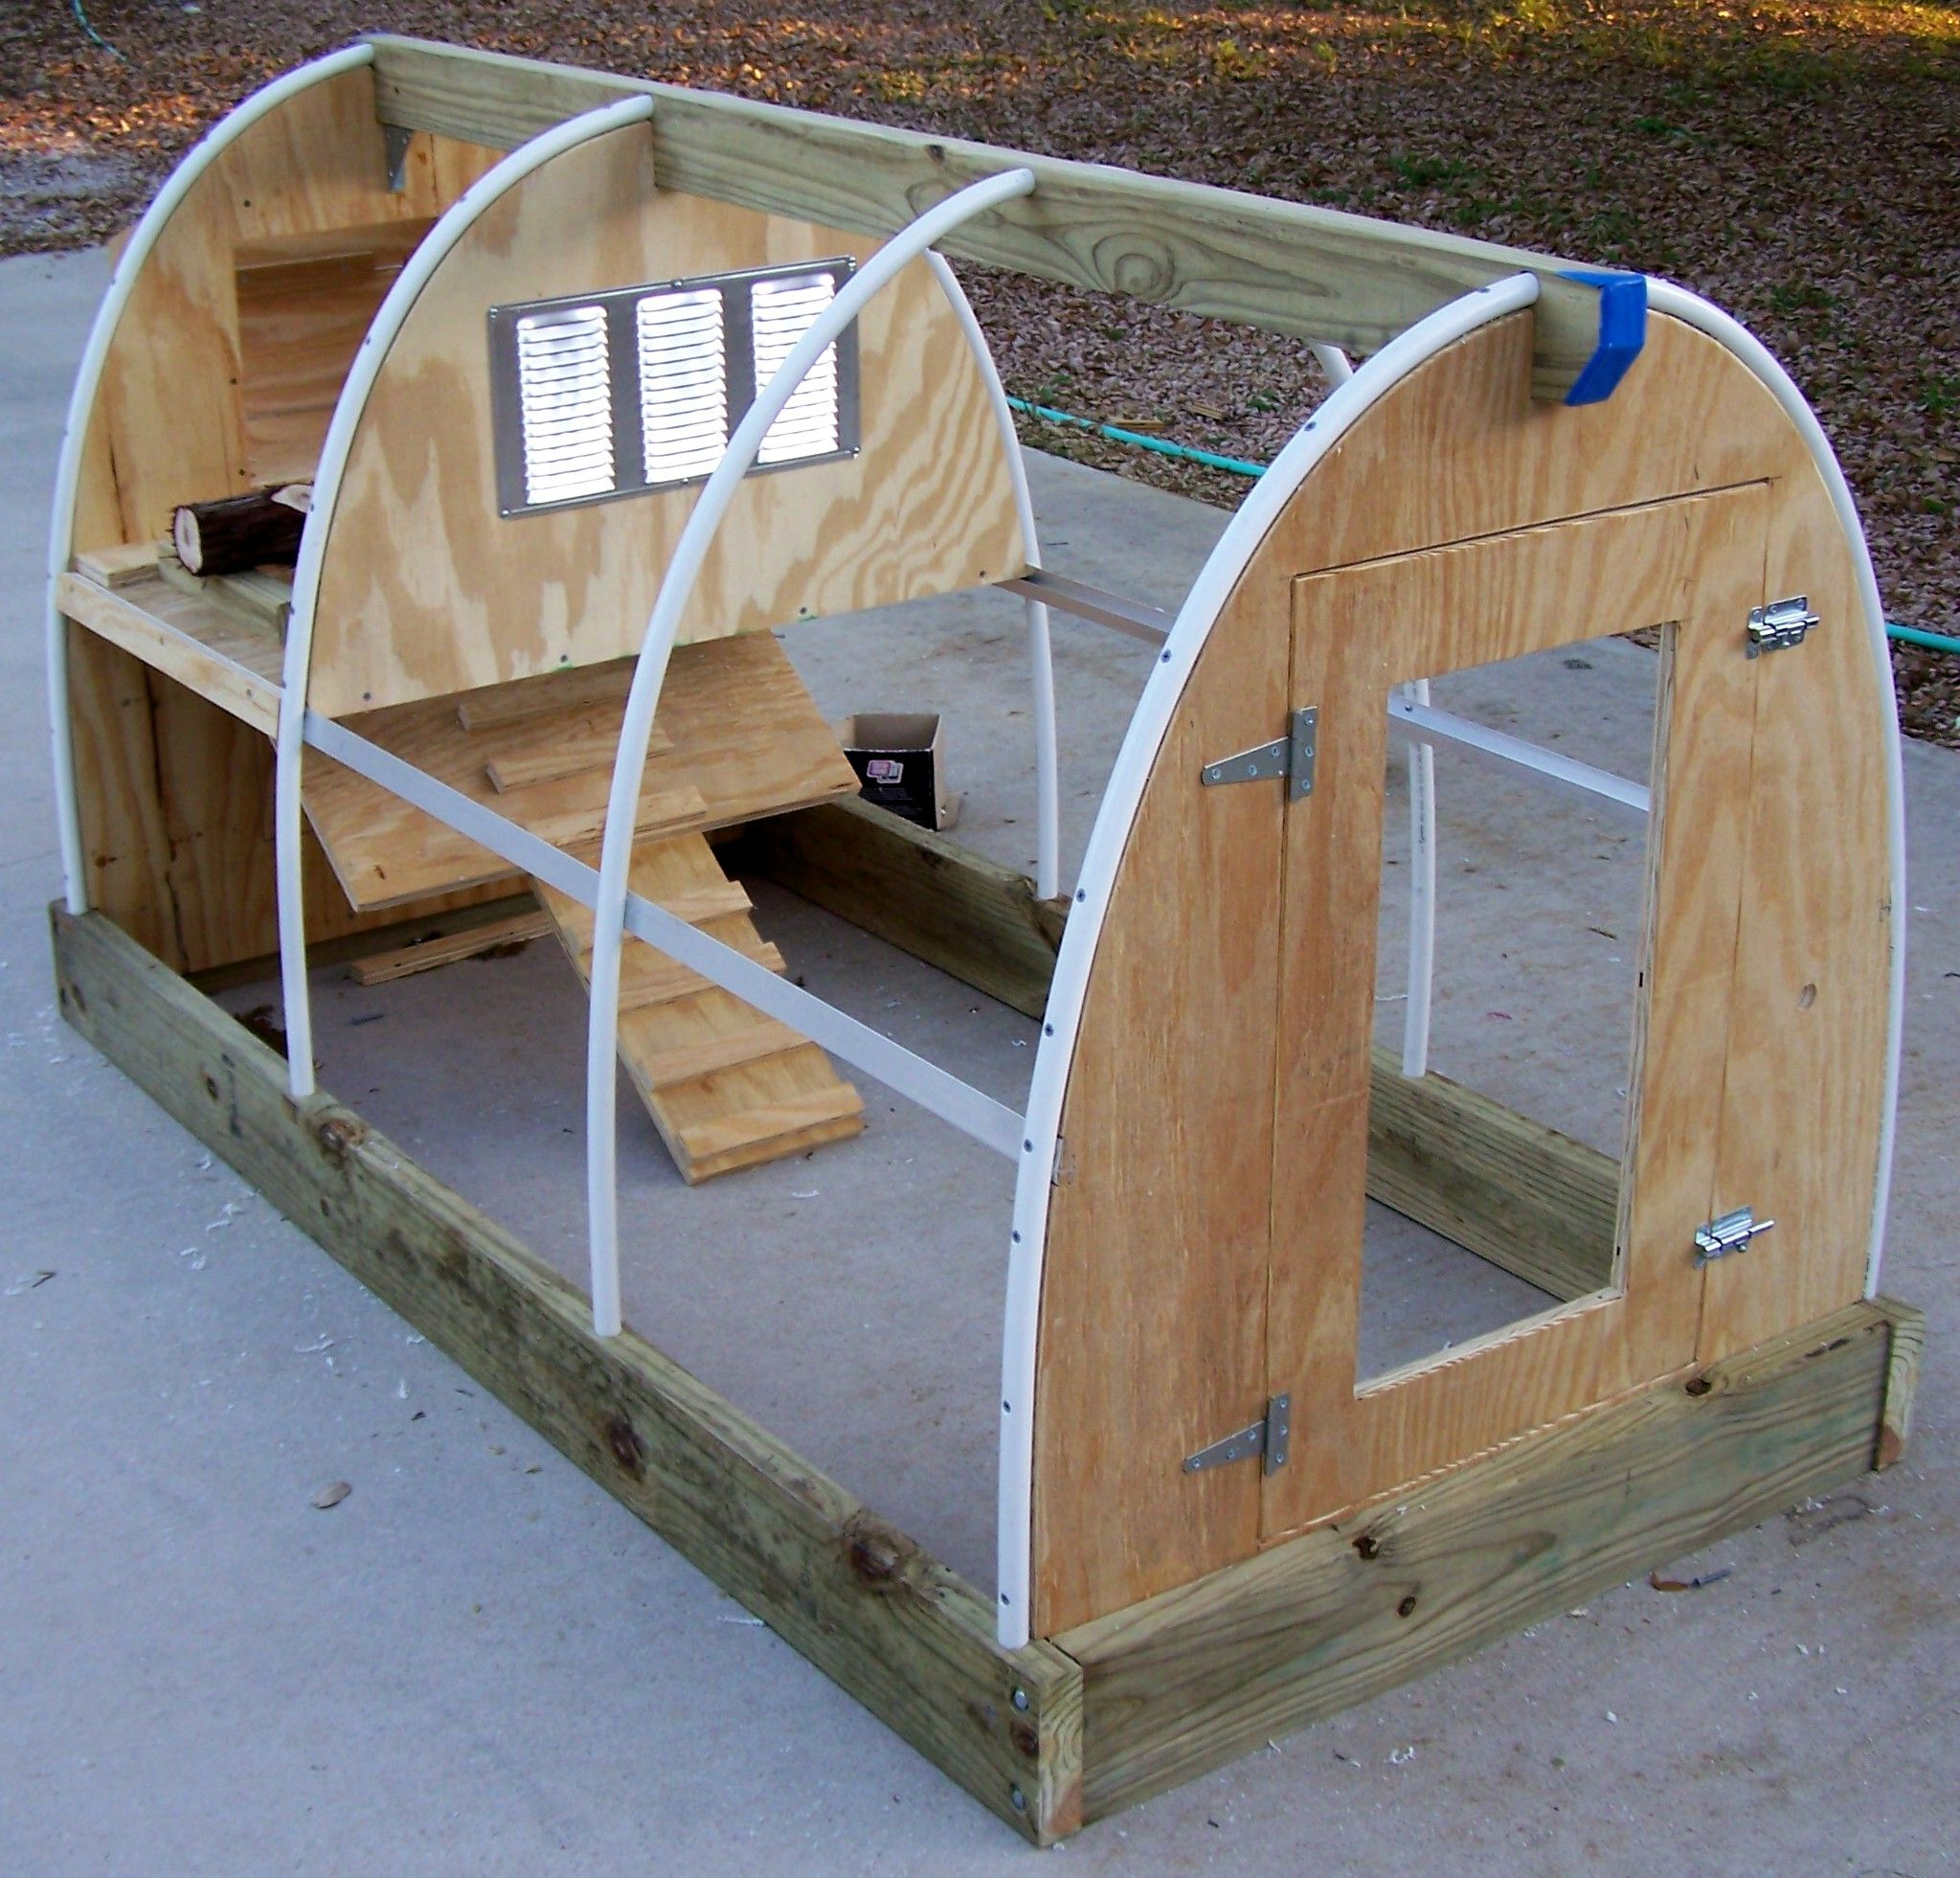 DIY Chicken Coops Plans That Are Easy To Build Diy Chicken Coop